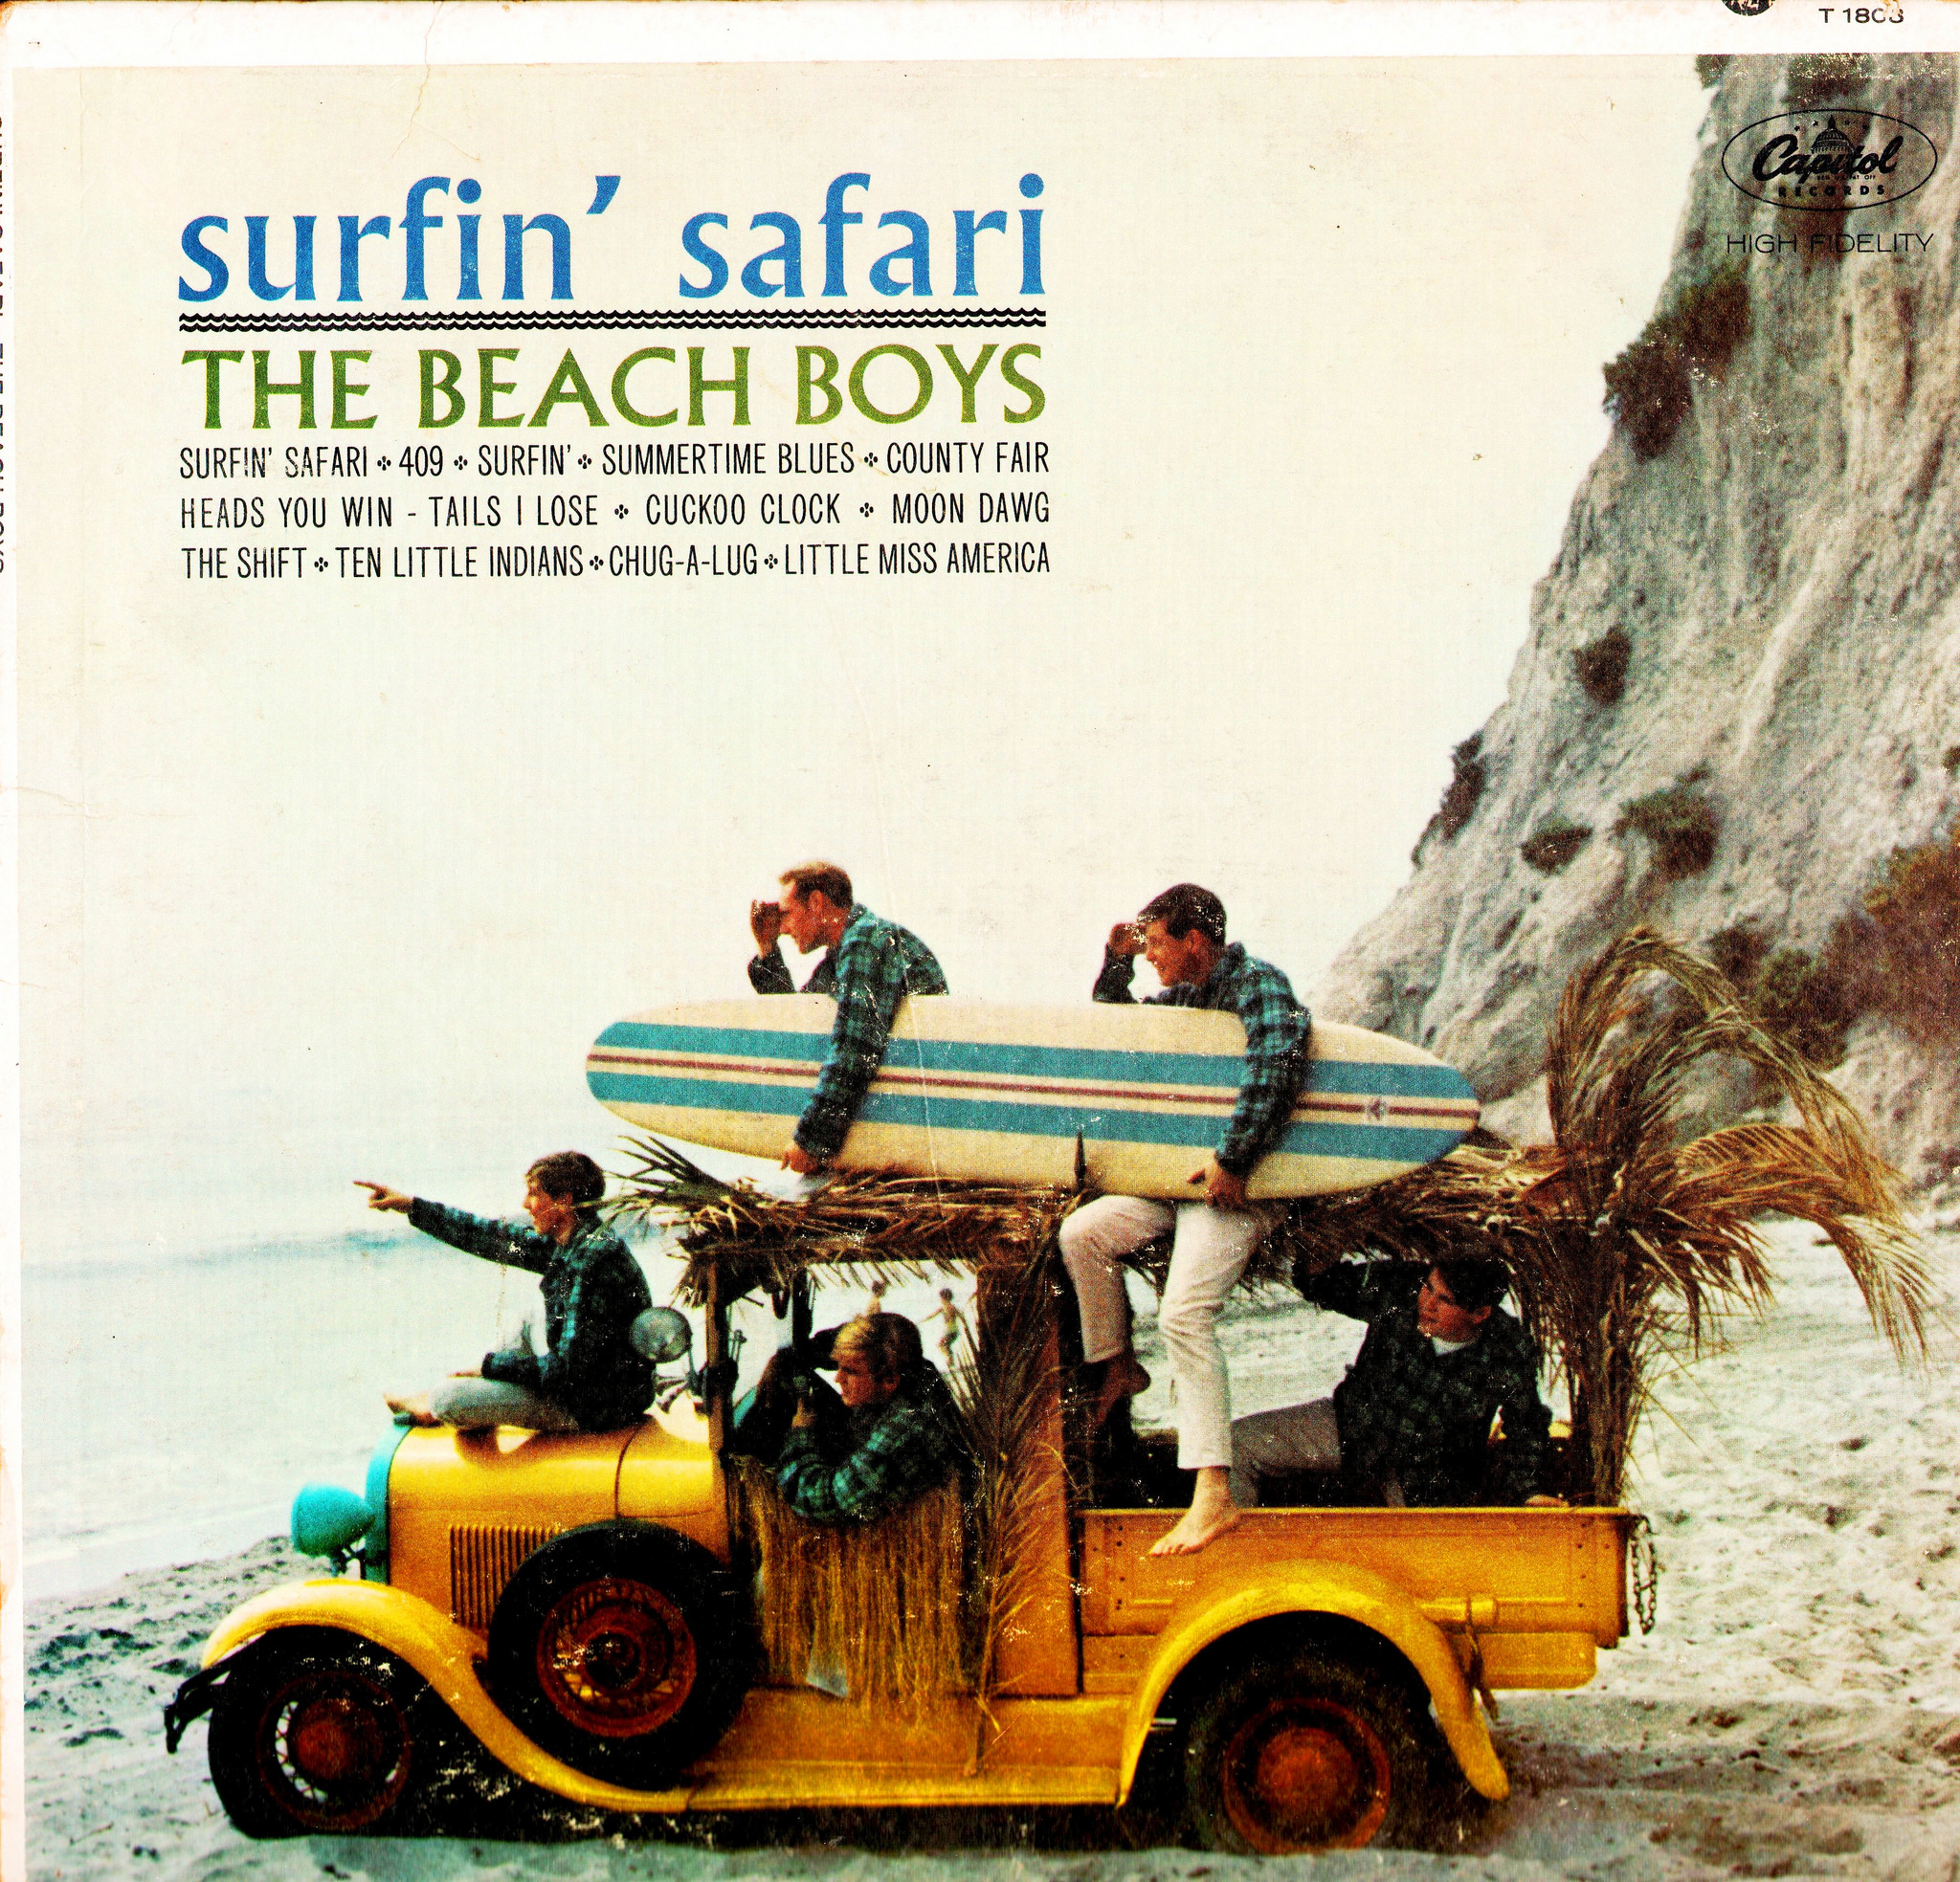 Surfin Safari By The Beach Boys Fonts In Use